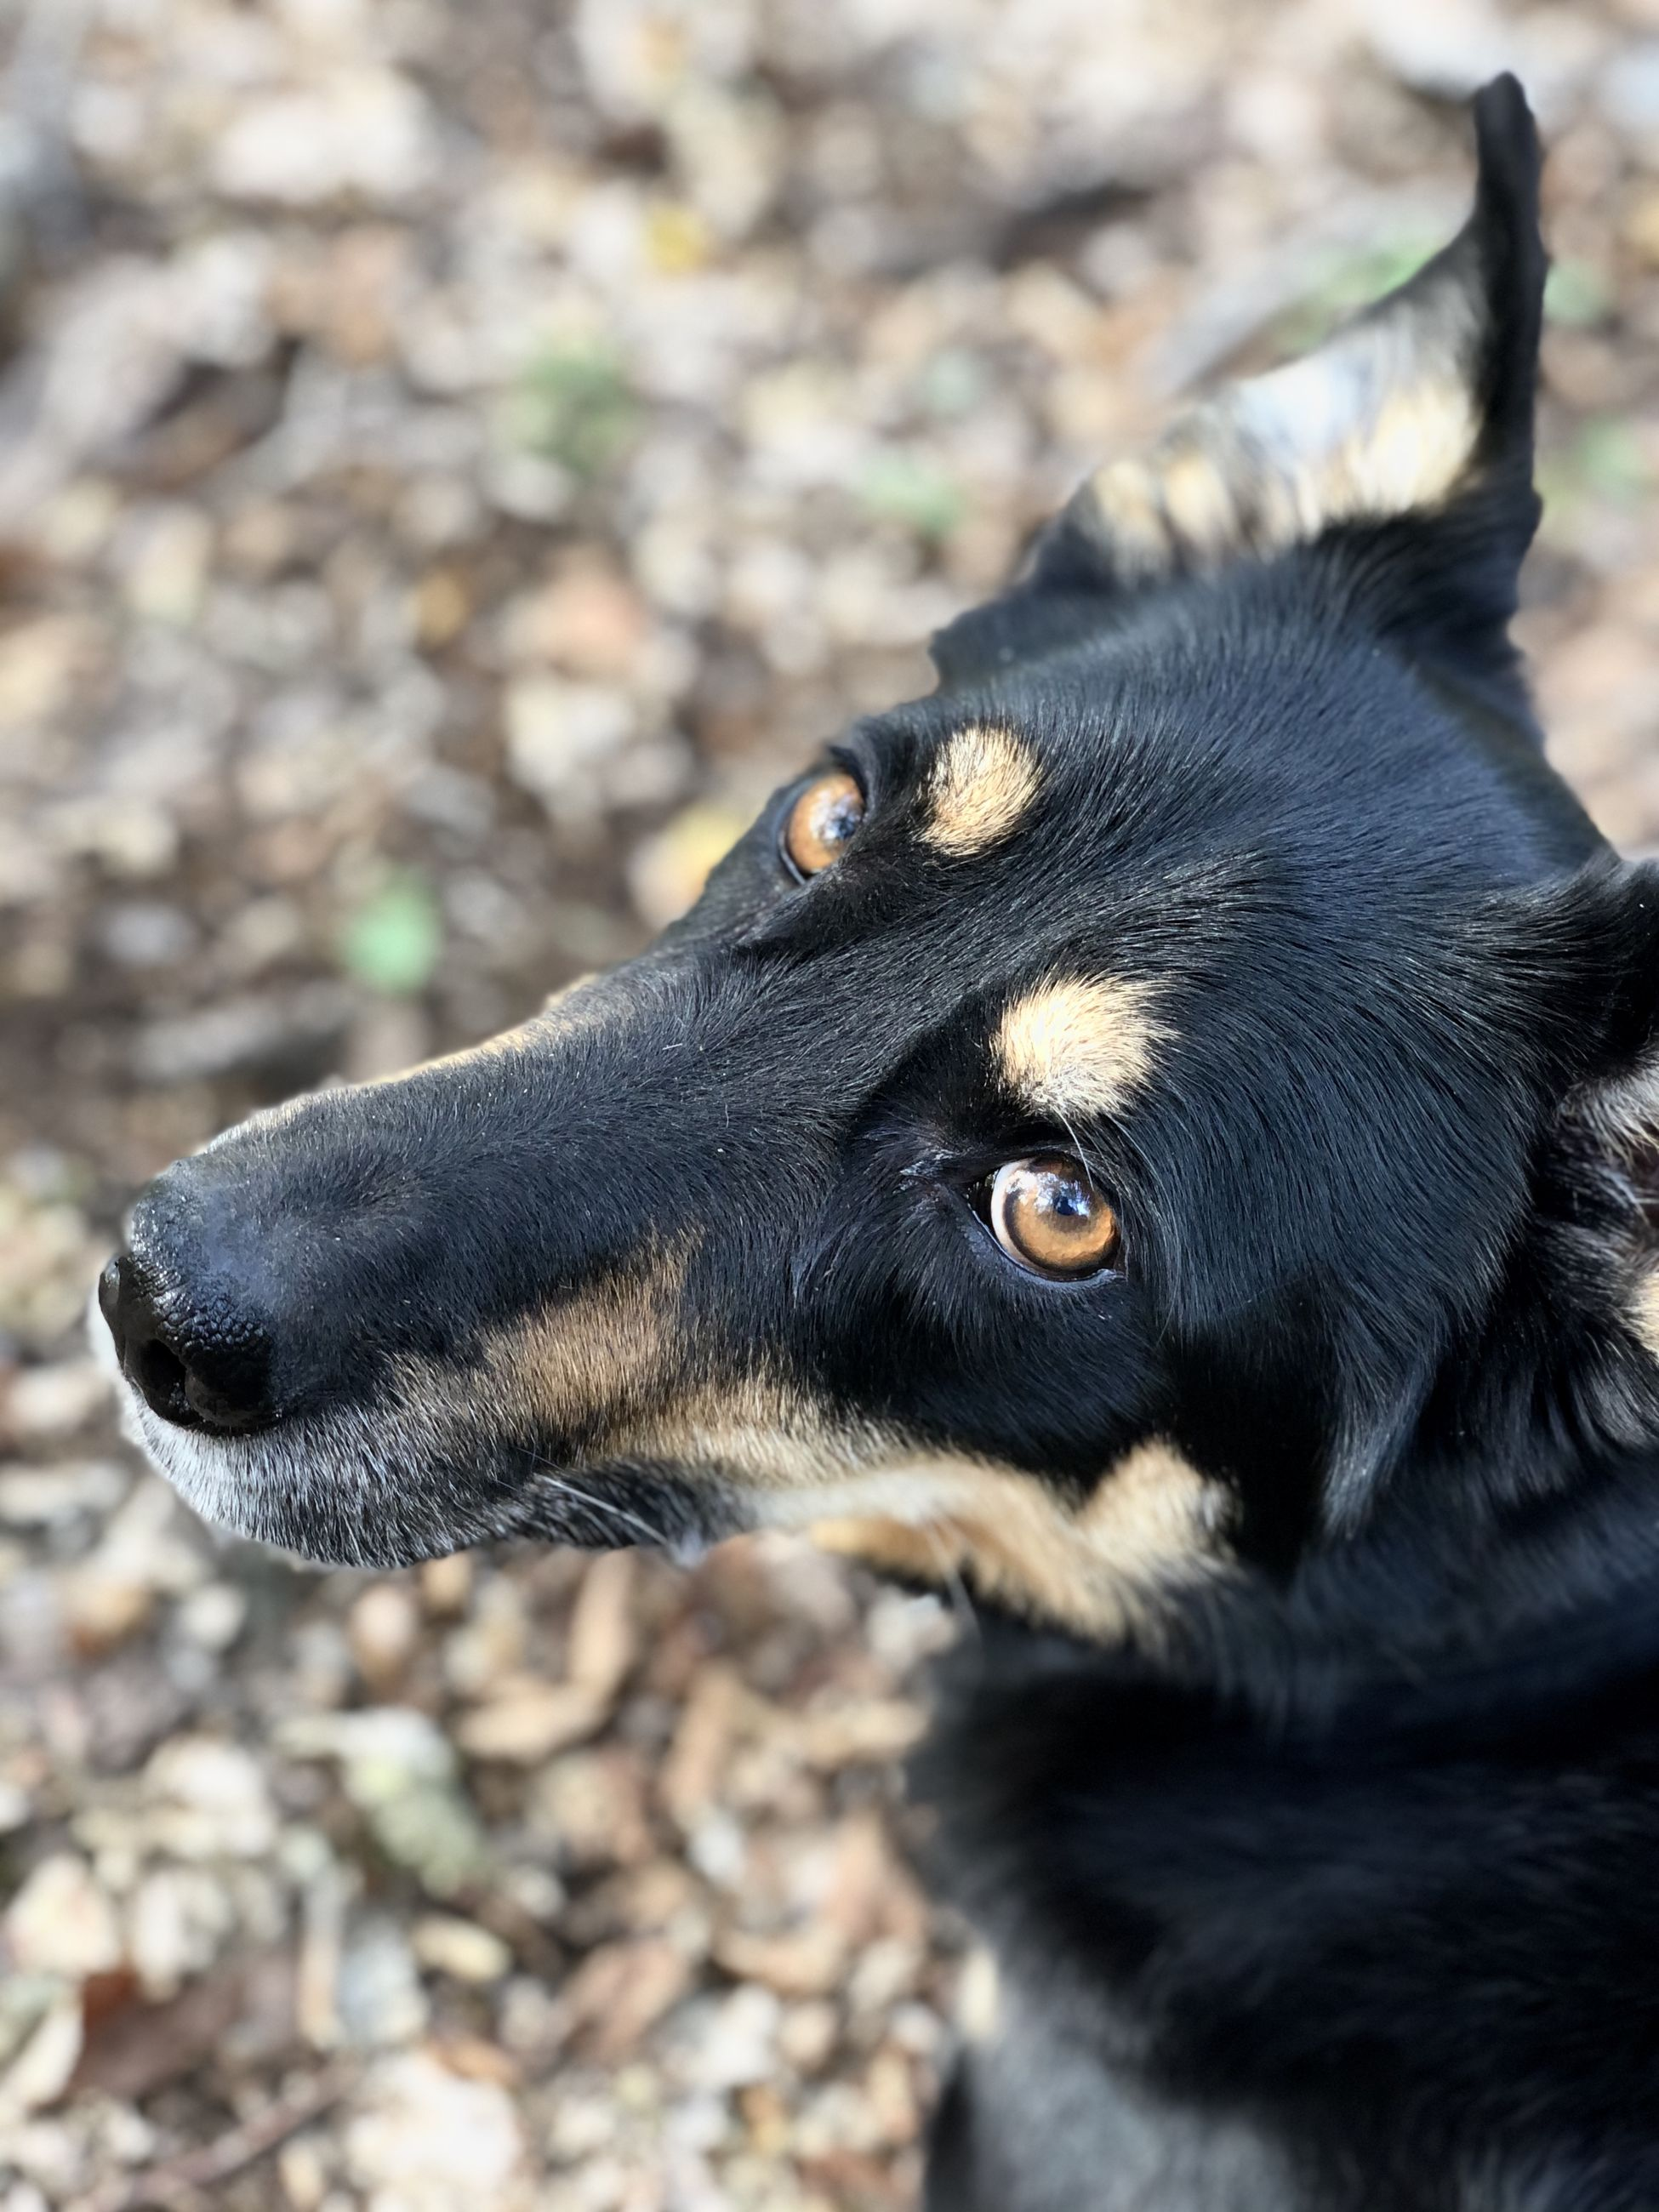 one animal, animal themes, animal, mammal, black color, vertebrate, pets, domestic animals, domestic, animal body part, close-up, no people, dog, focus on foreground, canine, animal head, looking, day, looking away, selective focus, profile view, animal eye, snout